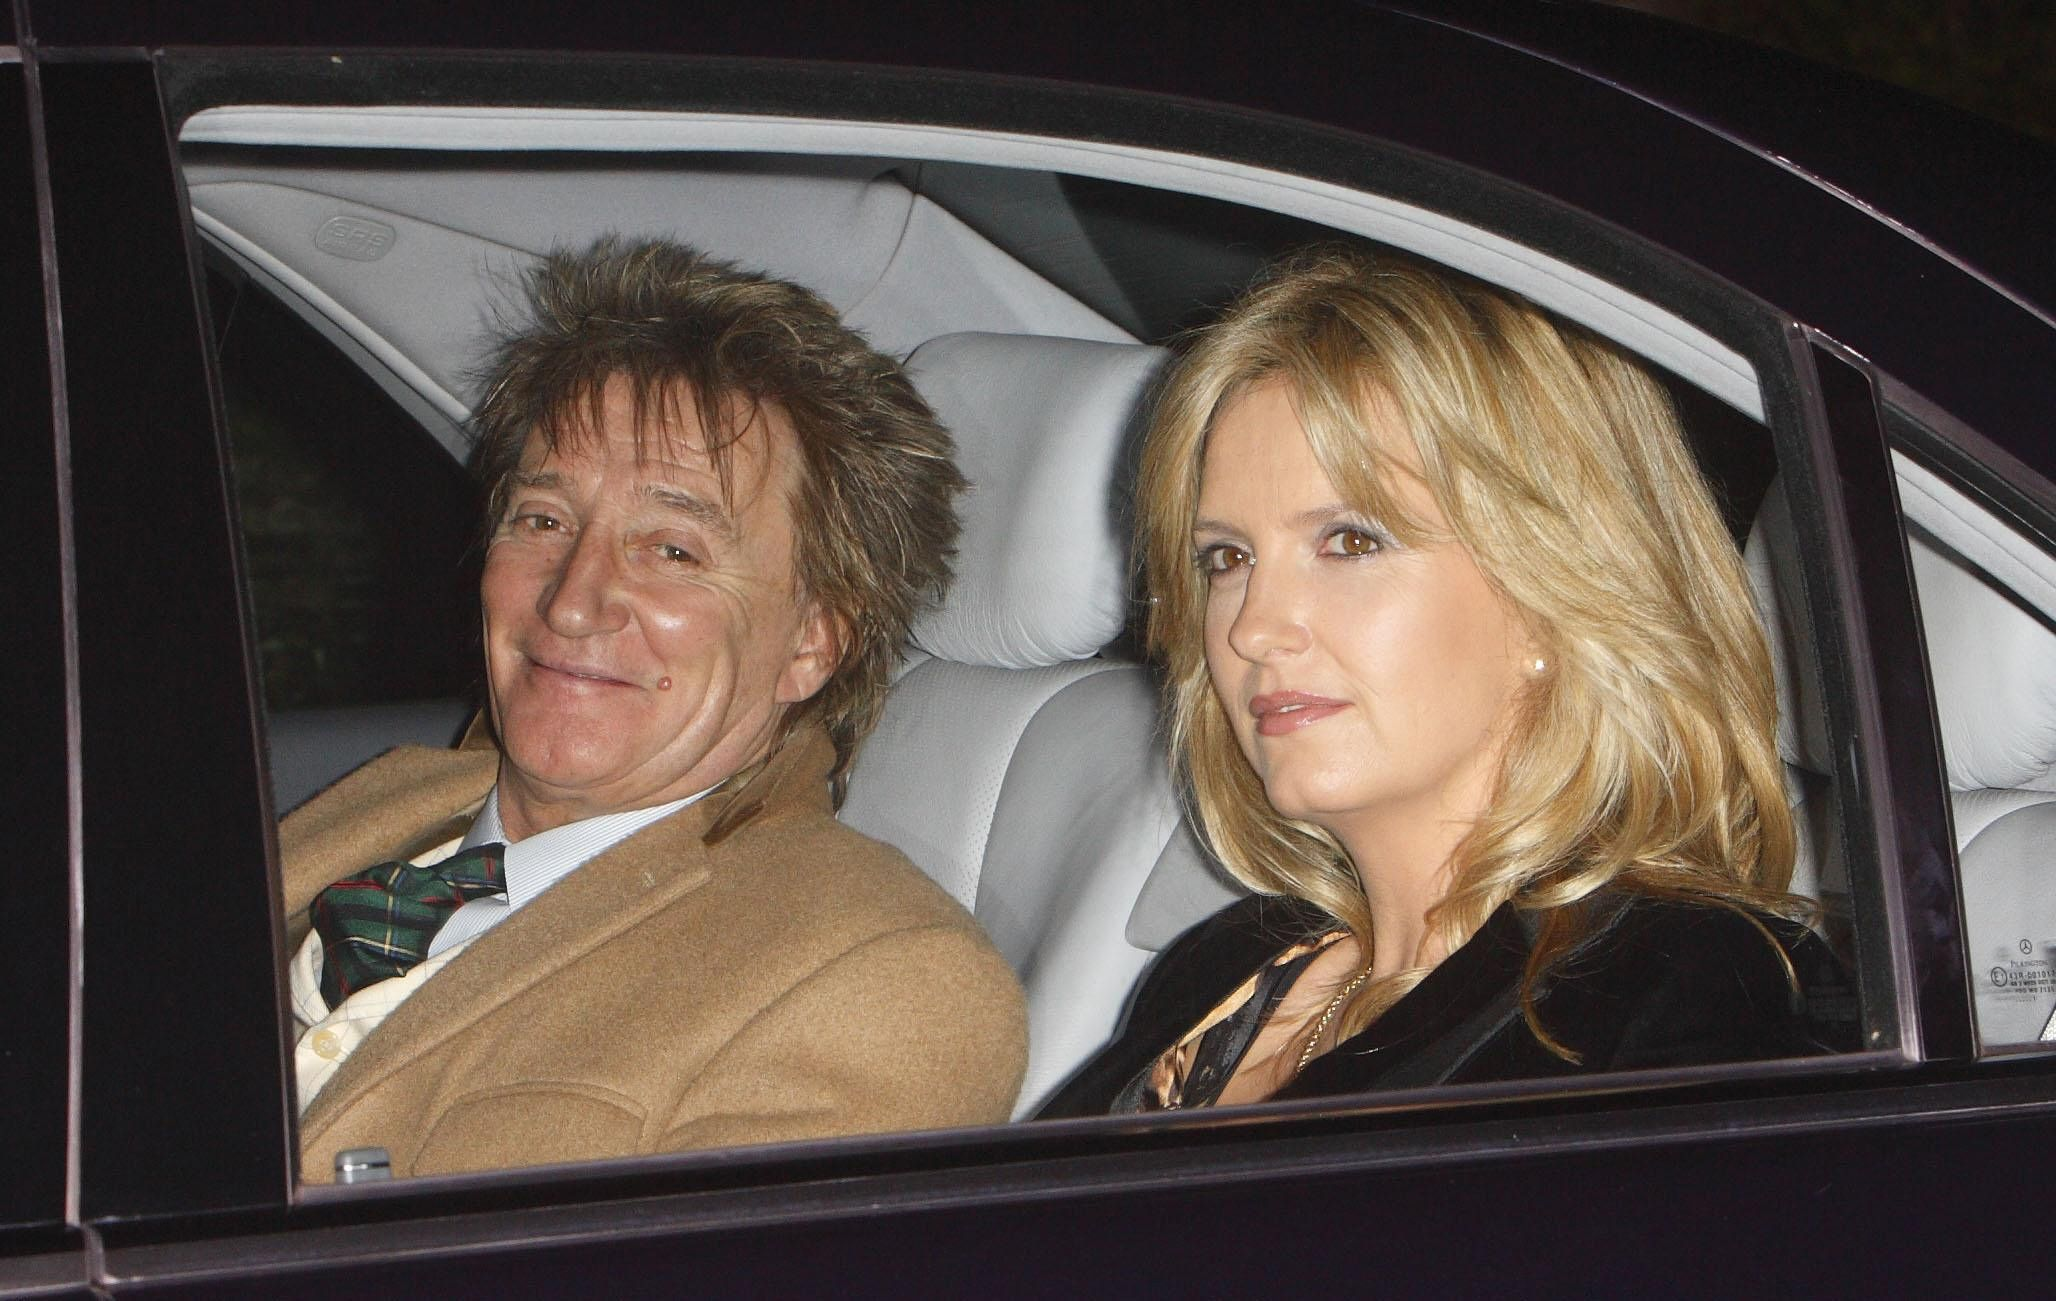 Rod Stewart and his wife Penny Lancaster arrive at Prince Charles's 60th birthday party at his country home.